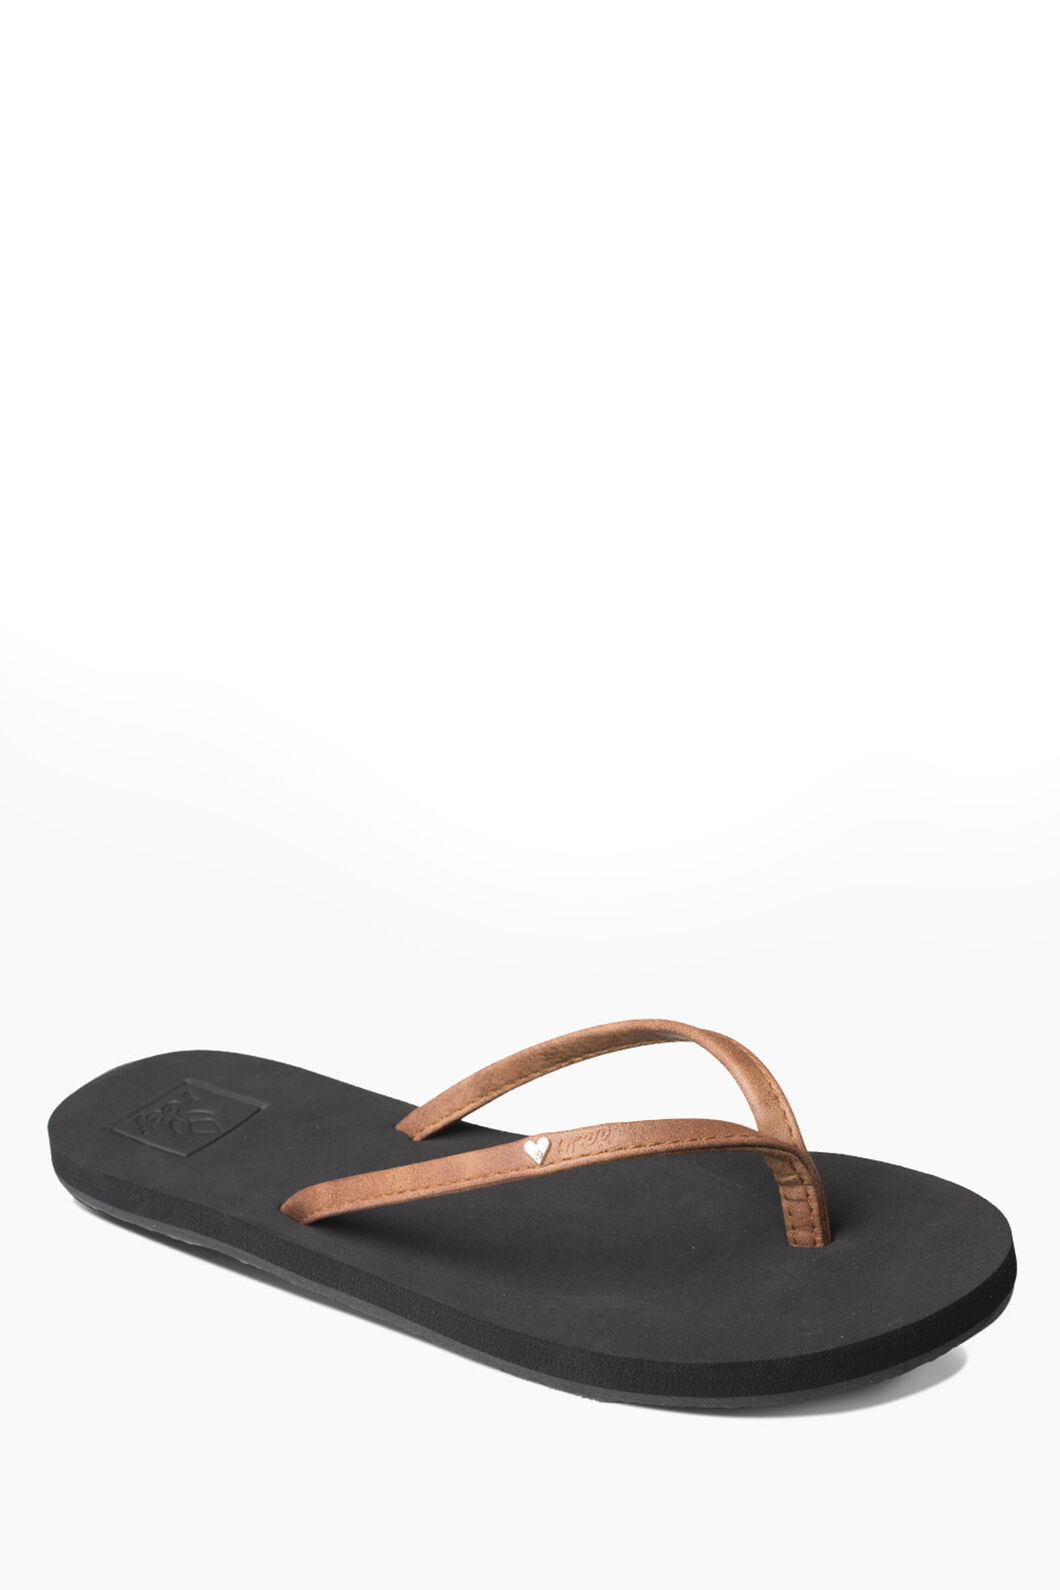 Reef Indiana Sandals — Women's, Natural, hi-res